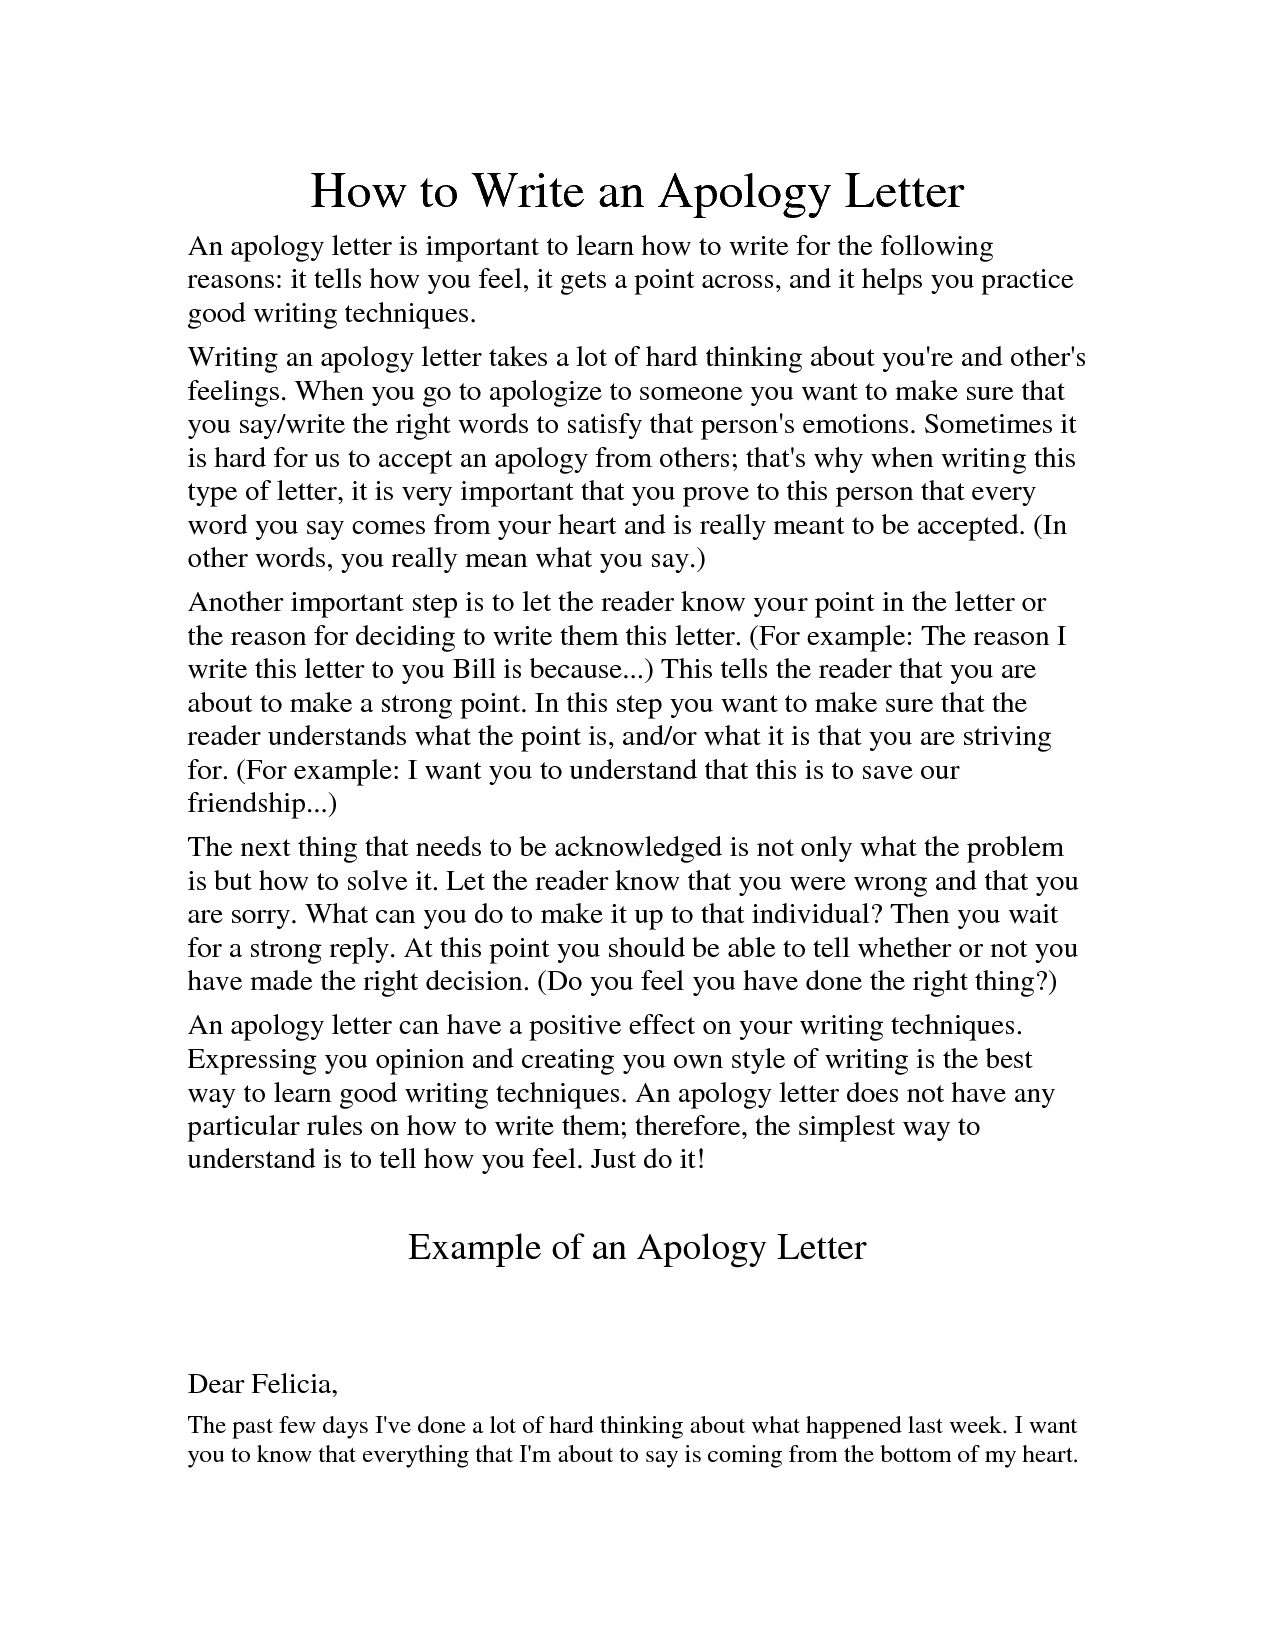 How To Write An Apology Letter To A Teacher SampleLetter Of – How to Make an Apology Letter